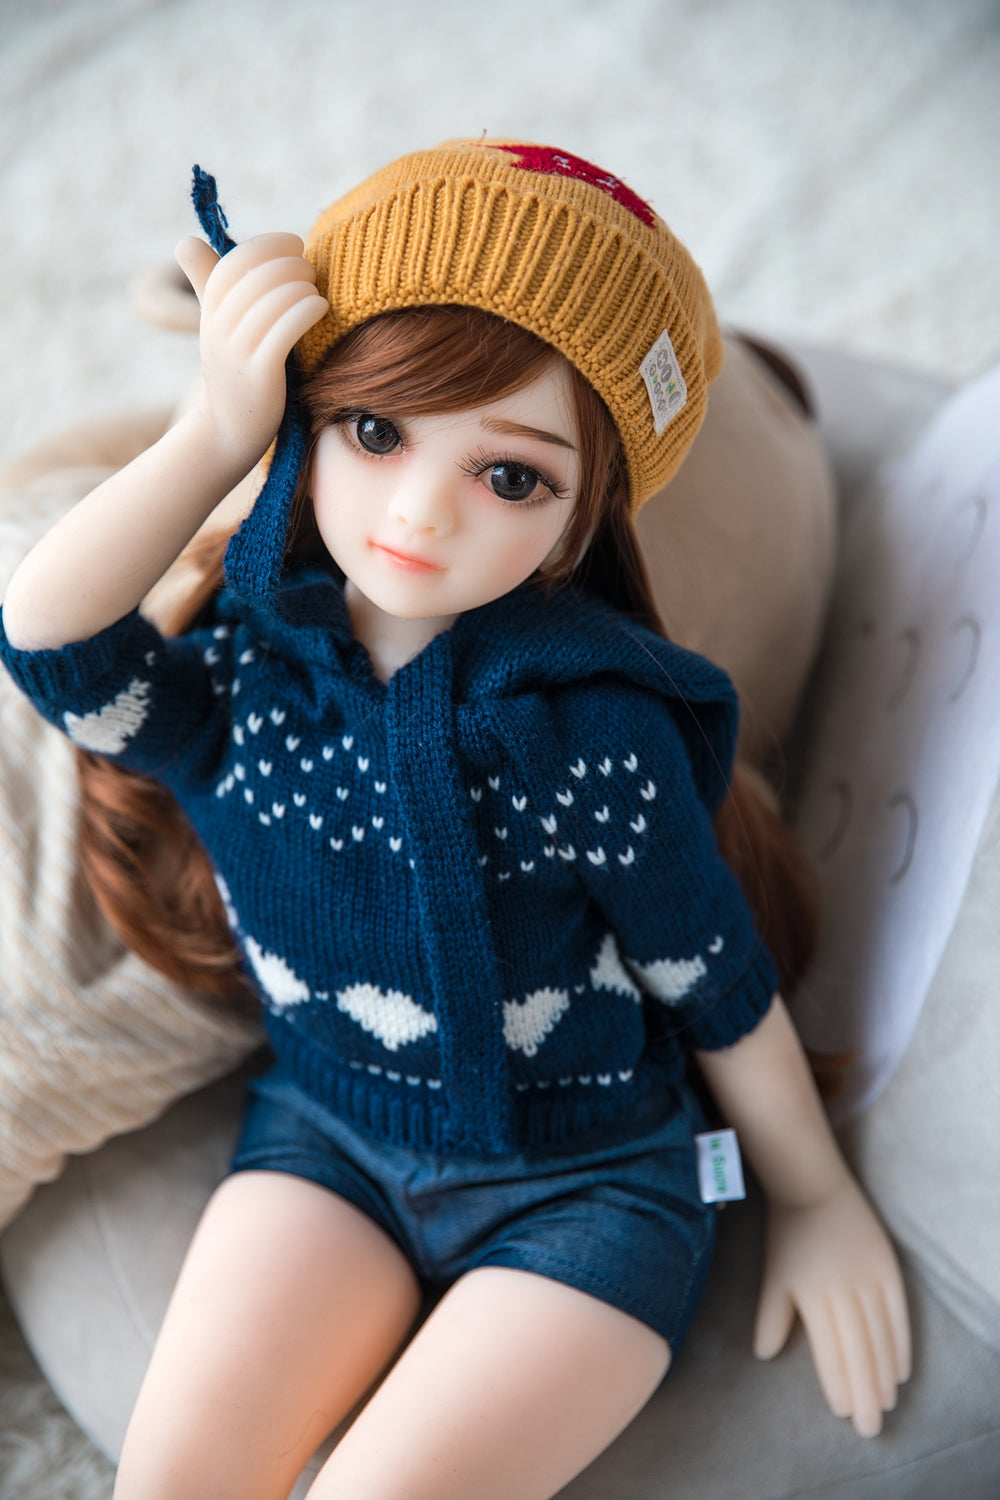 buy flat chested love doll